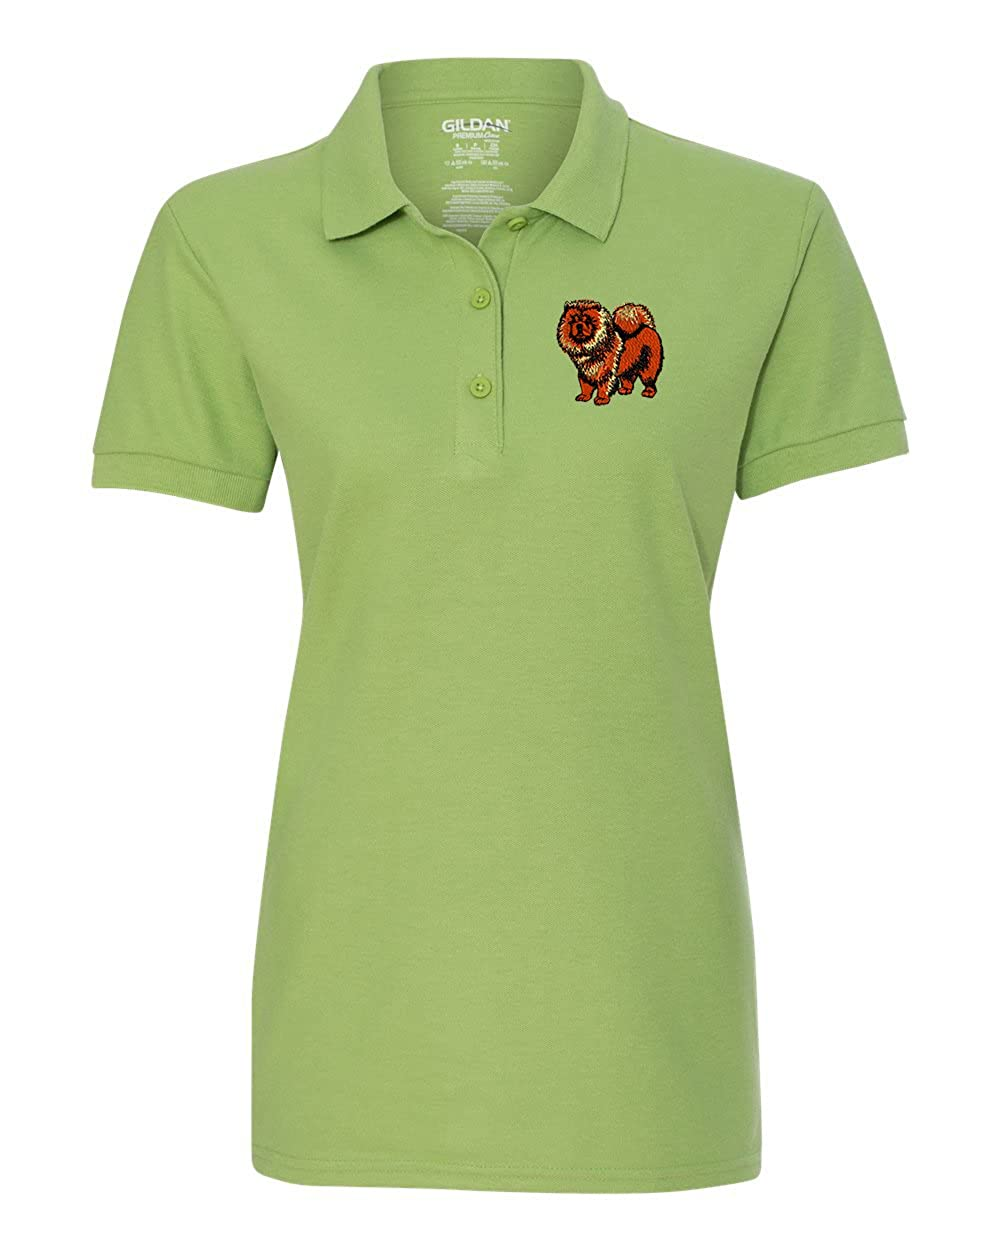 c24f30018 CHOW DOG Custom Personalized Embroidery Embroidered Golf WOMEN Polo Shirt  at Amazon Women's Clothing store: